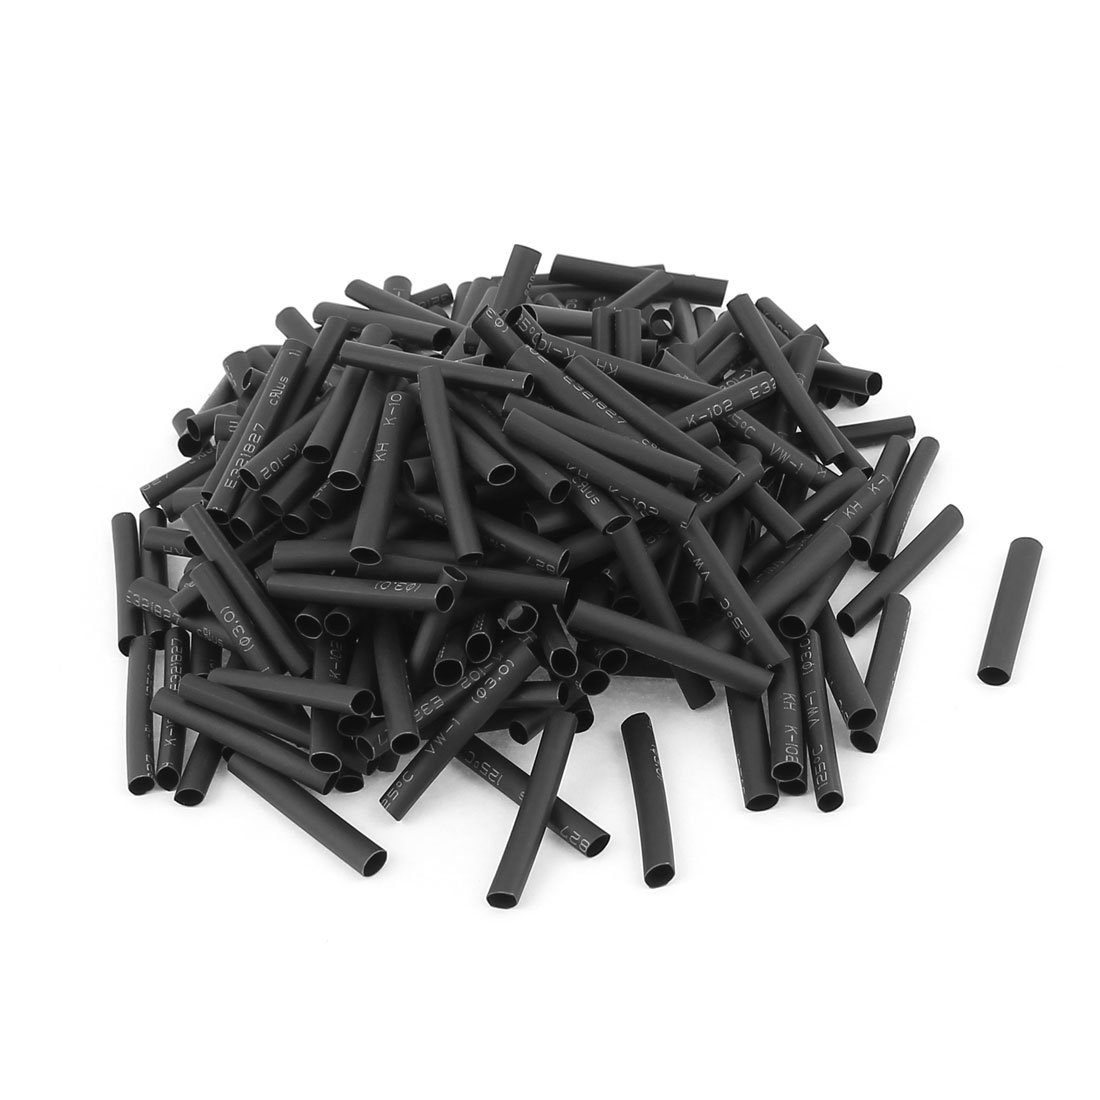 Uxcell Wire Wrap Sleeve 3 mm Dia 30 mm Long Heat Shrink Tubing 240Pcs Black